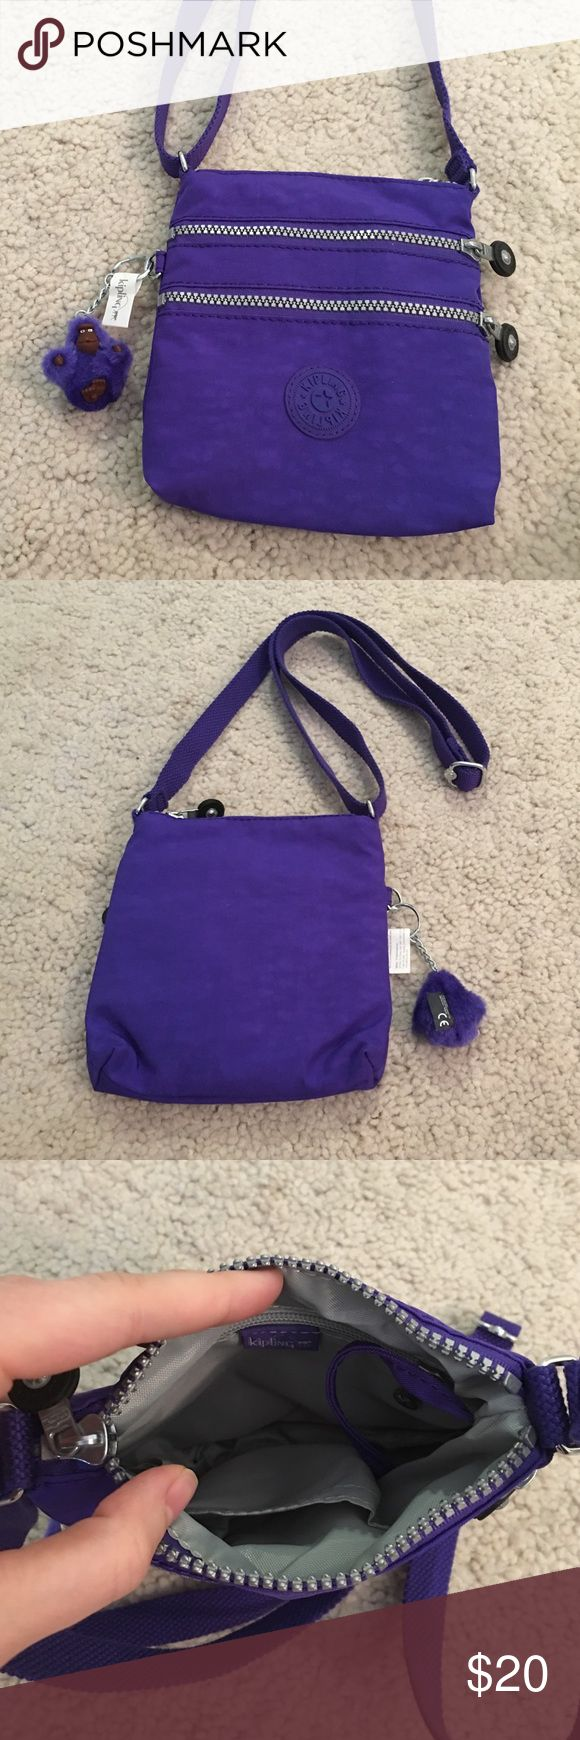 Kipling purple cross body handbag purse This is a purple cross body handbag purse from Kipling in one size fits all s/m/l. This purse is brand new! It does not have the original sales tag, but it does has the Kipling tag still attached to the signature Kipling monkey keychain. This purse measures approx. 7 inches in length by 7.5 inches in height by 0.5 inches in depth. The strap is adjustable. Thanks for looking!!!! Kipling Bags Crossbody Bags